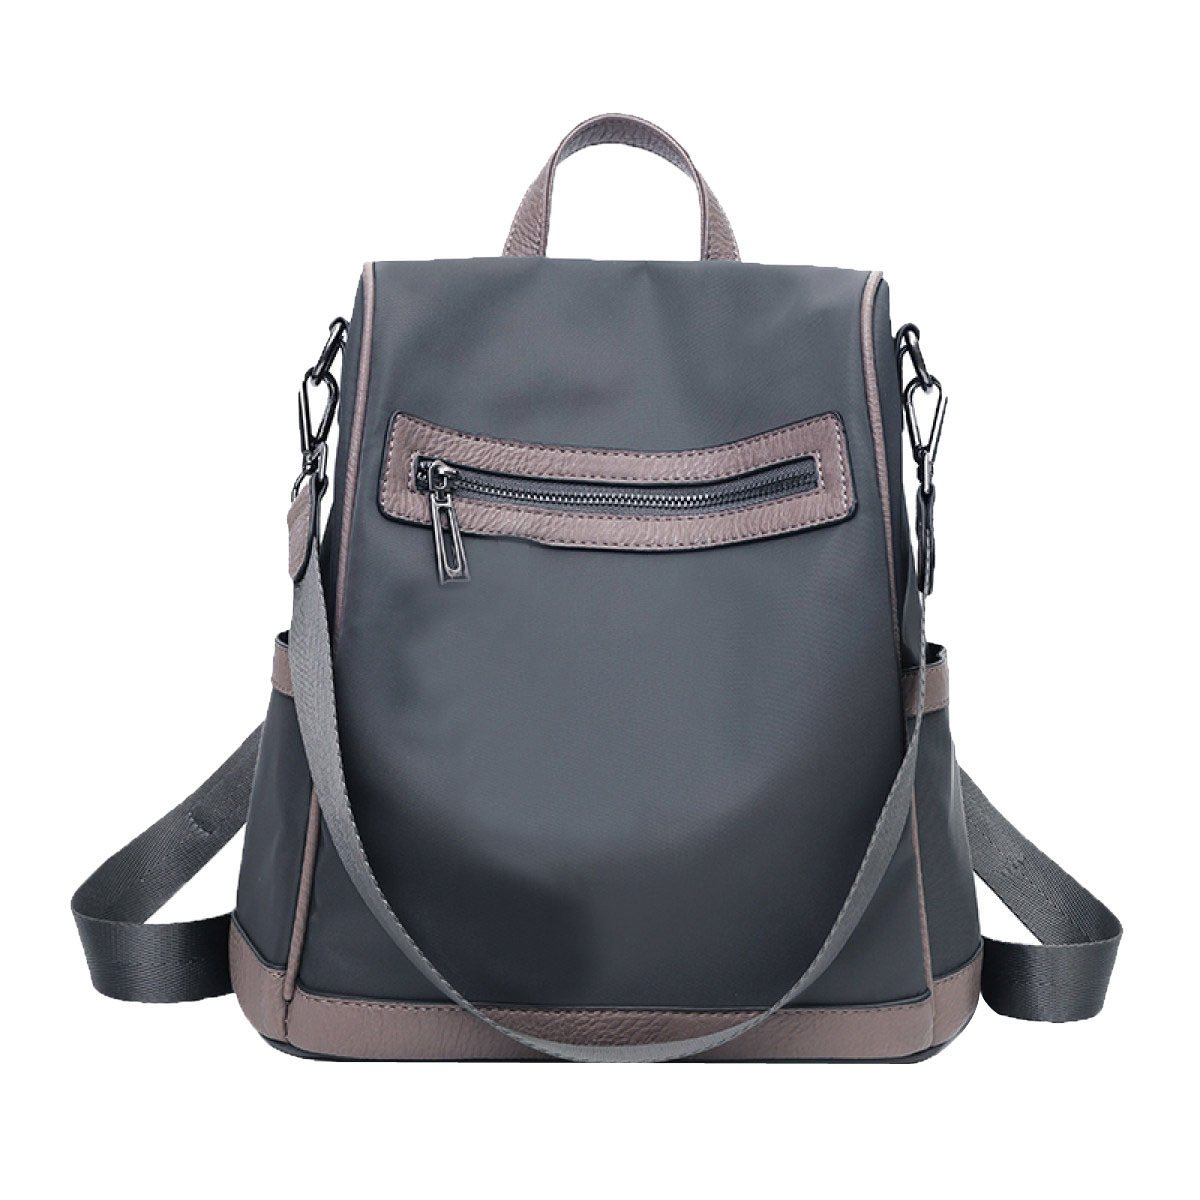 Grey One Size Oxford Cloth Backpack Fashion Waterproof School Bag Multifunctional Casual Shoulder Bag For Womens Girls